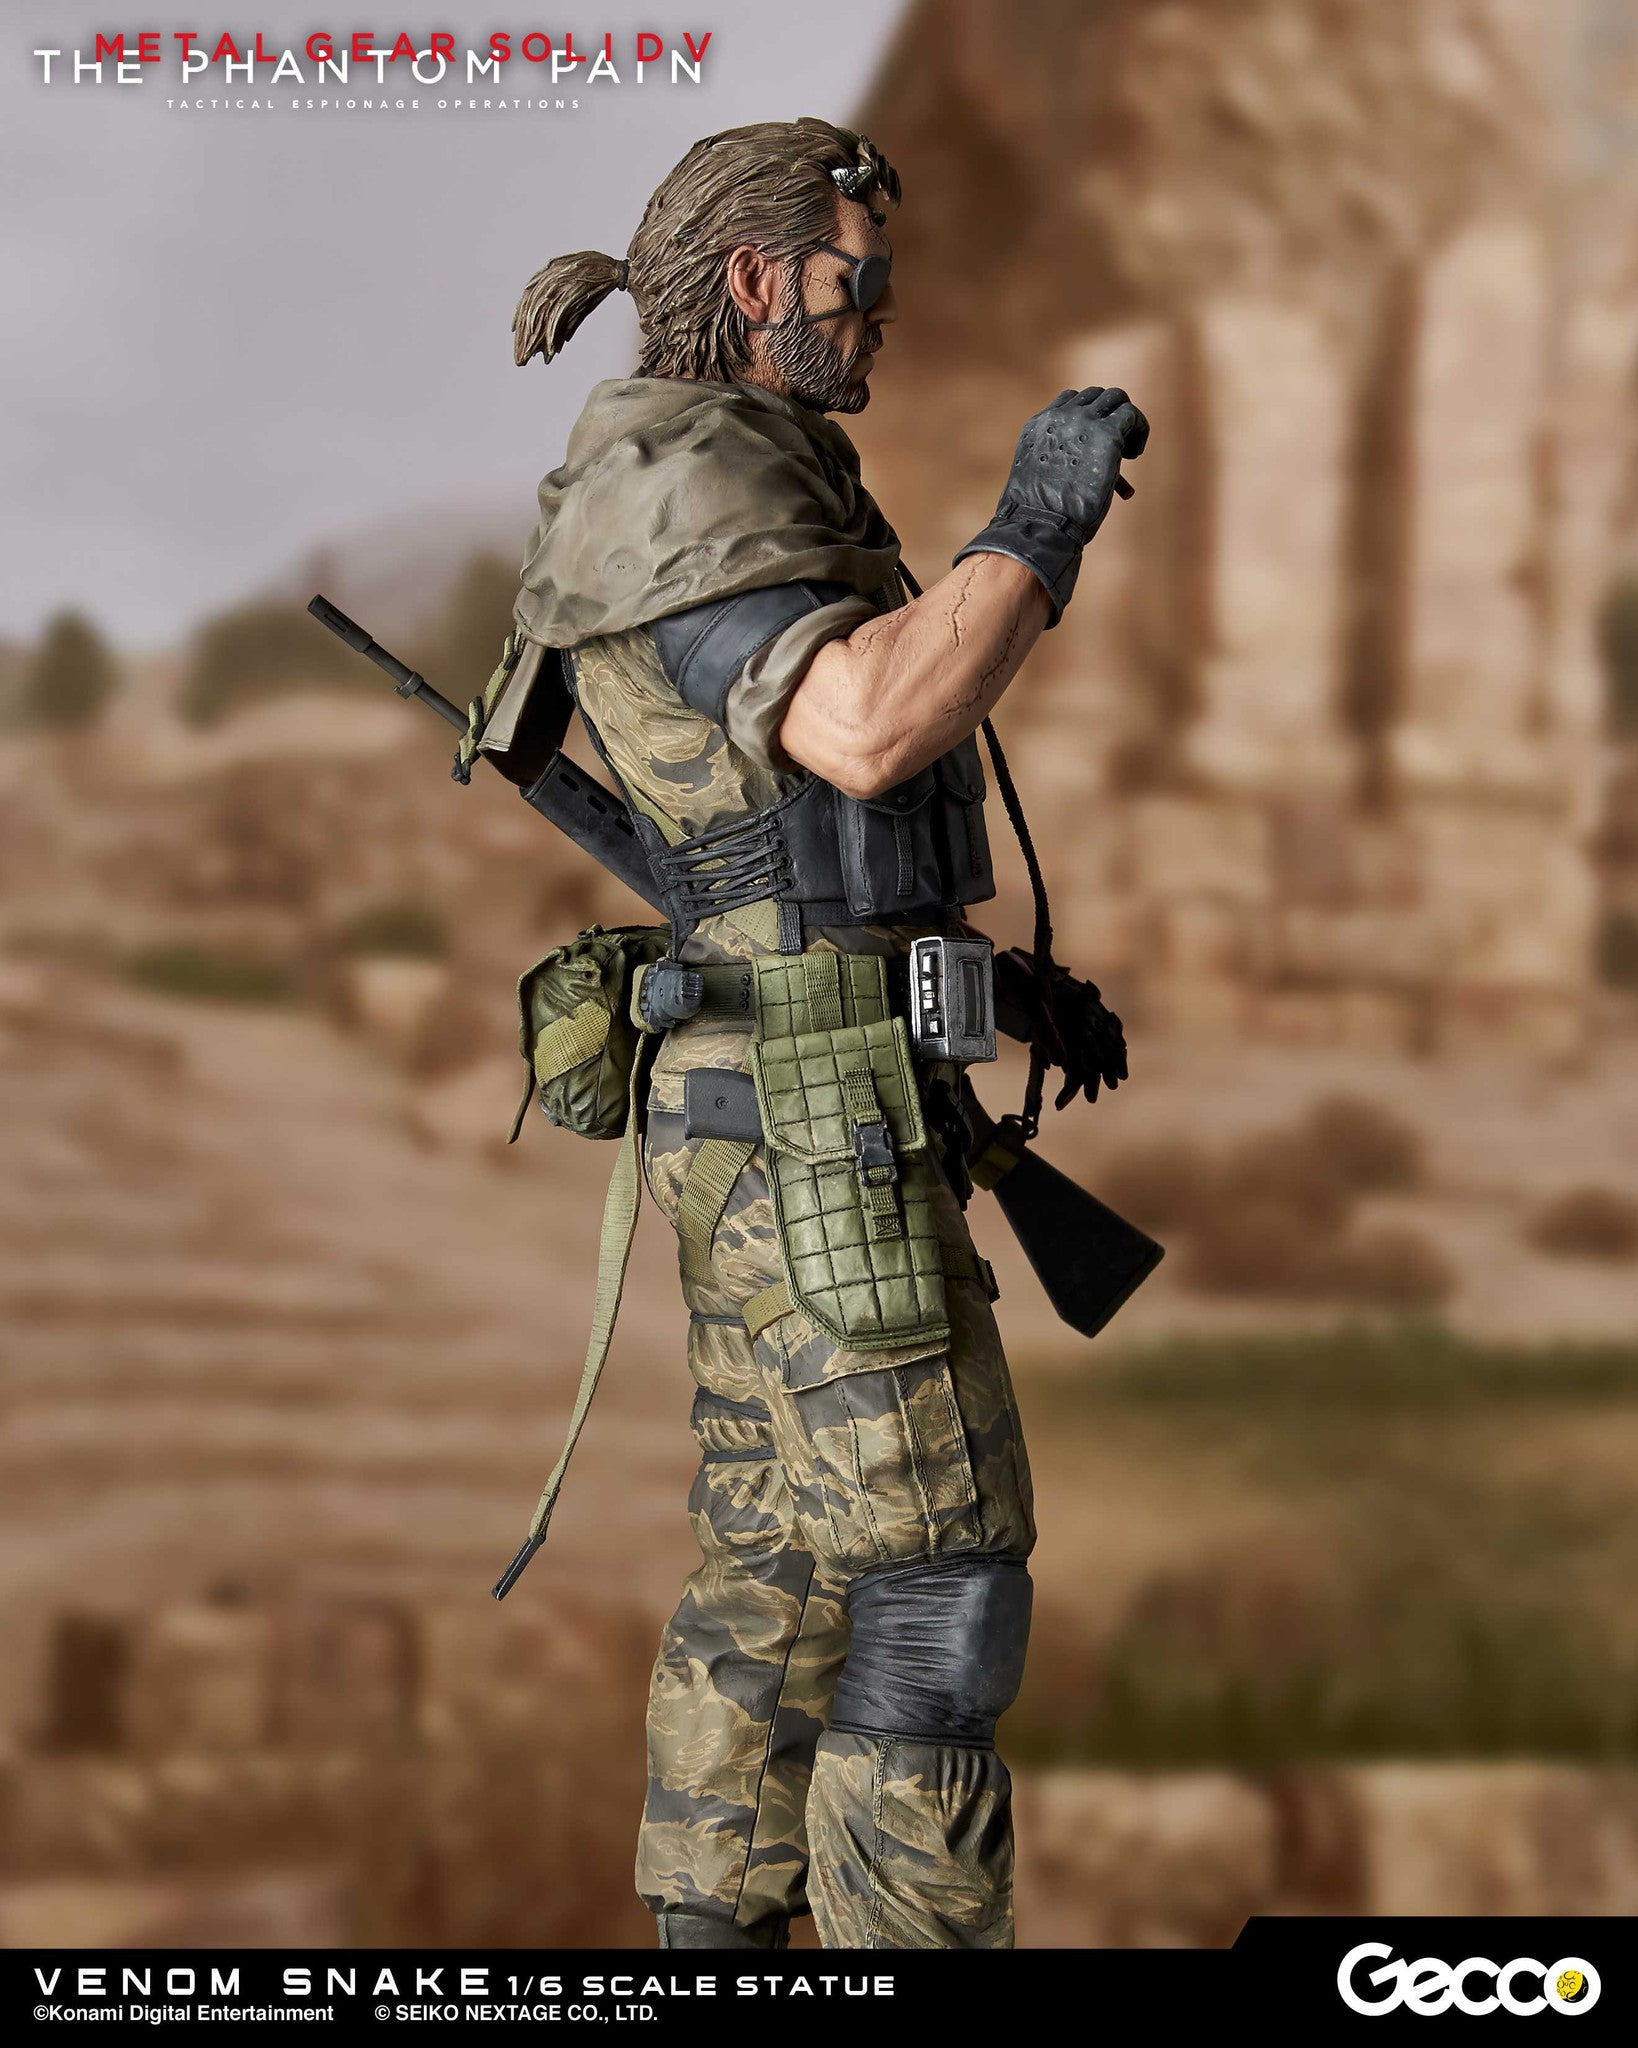 Gecco - Metal Gear Solid V: The Phantom Pain - Venom Snake 1/6 Scale Statue - Marvelous Toys - 2